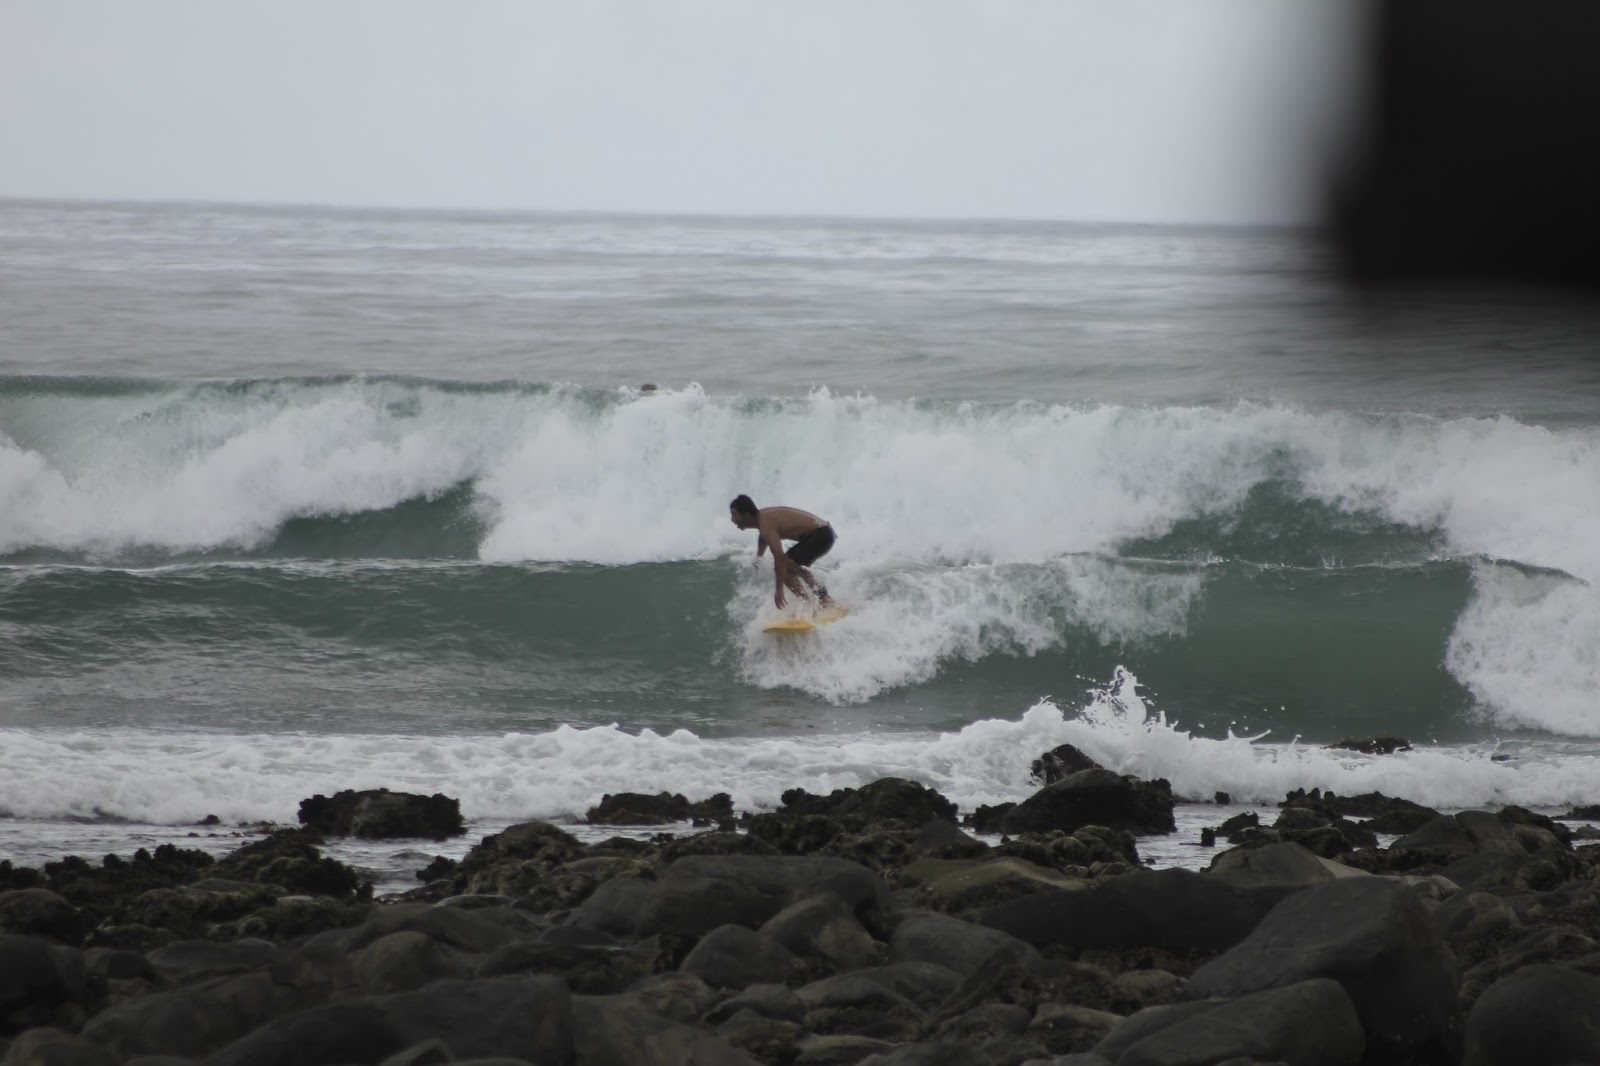 06-03-2016-australia-siebert-surfboards-09